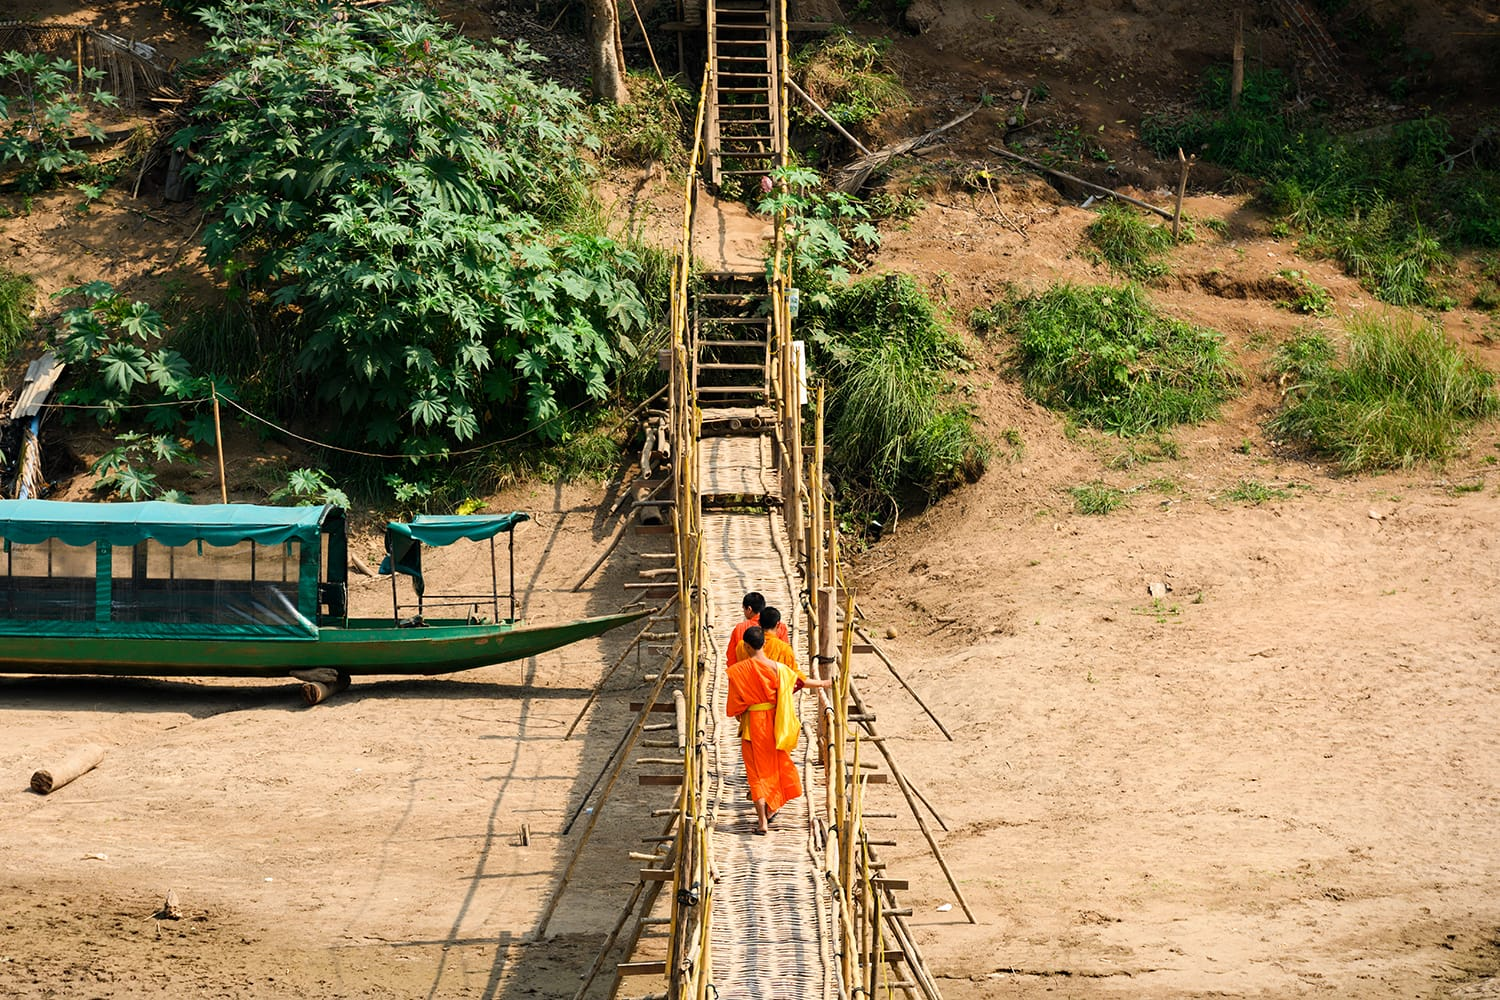 Three unidentified Buddhist monks are crossing the Bamboo Bridge that run across the Nam Khan river. The Bamboo Bridge is hand made out of bamboo and is one of the tourists attractions in Luang Prabang, Laos.